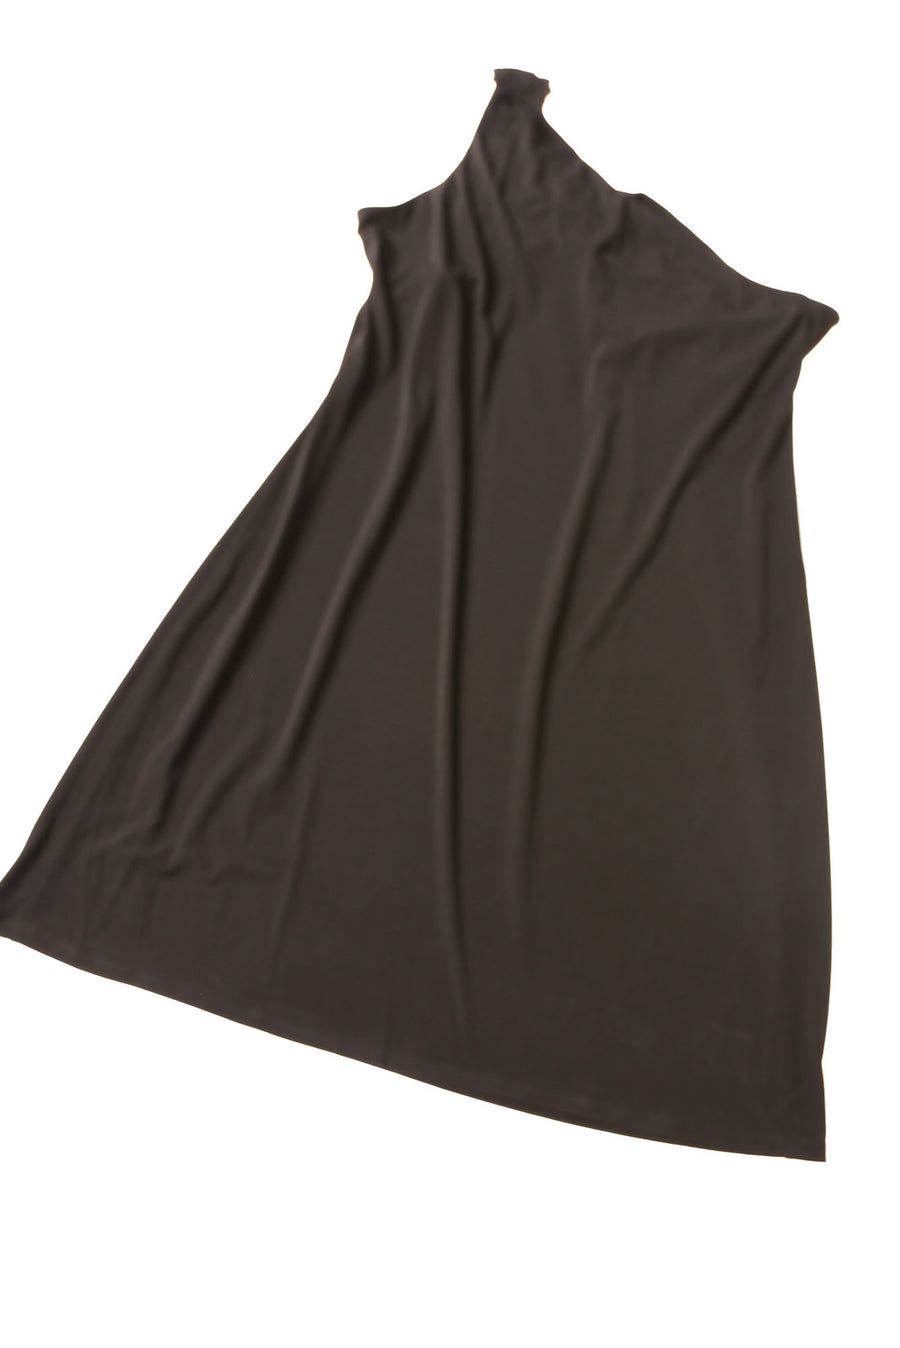 Women's Dress By Michael Kors